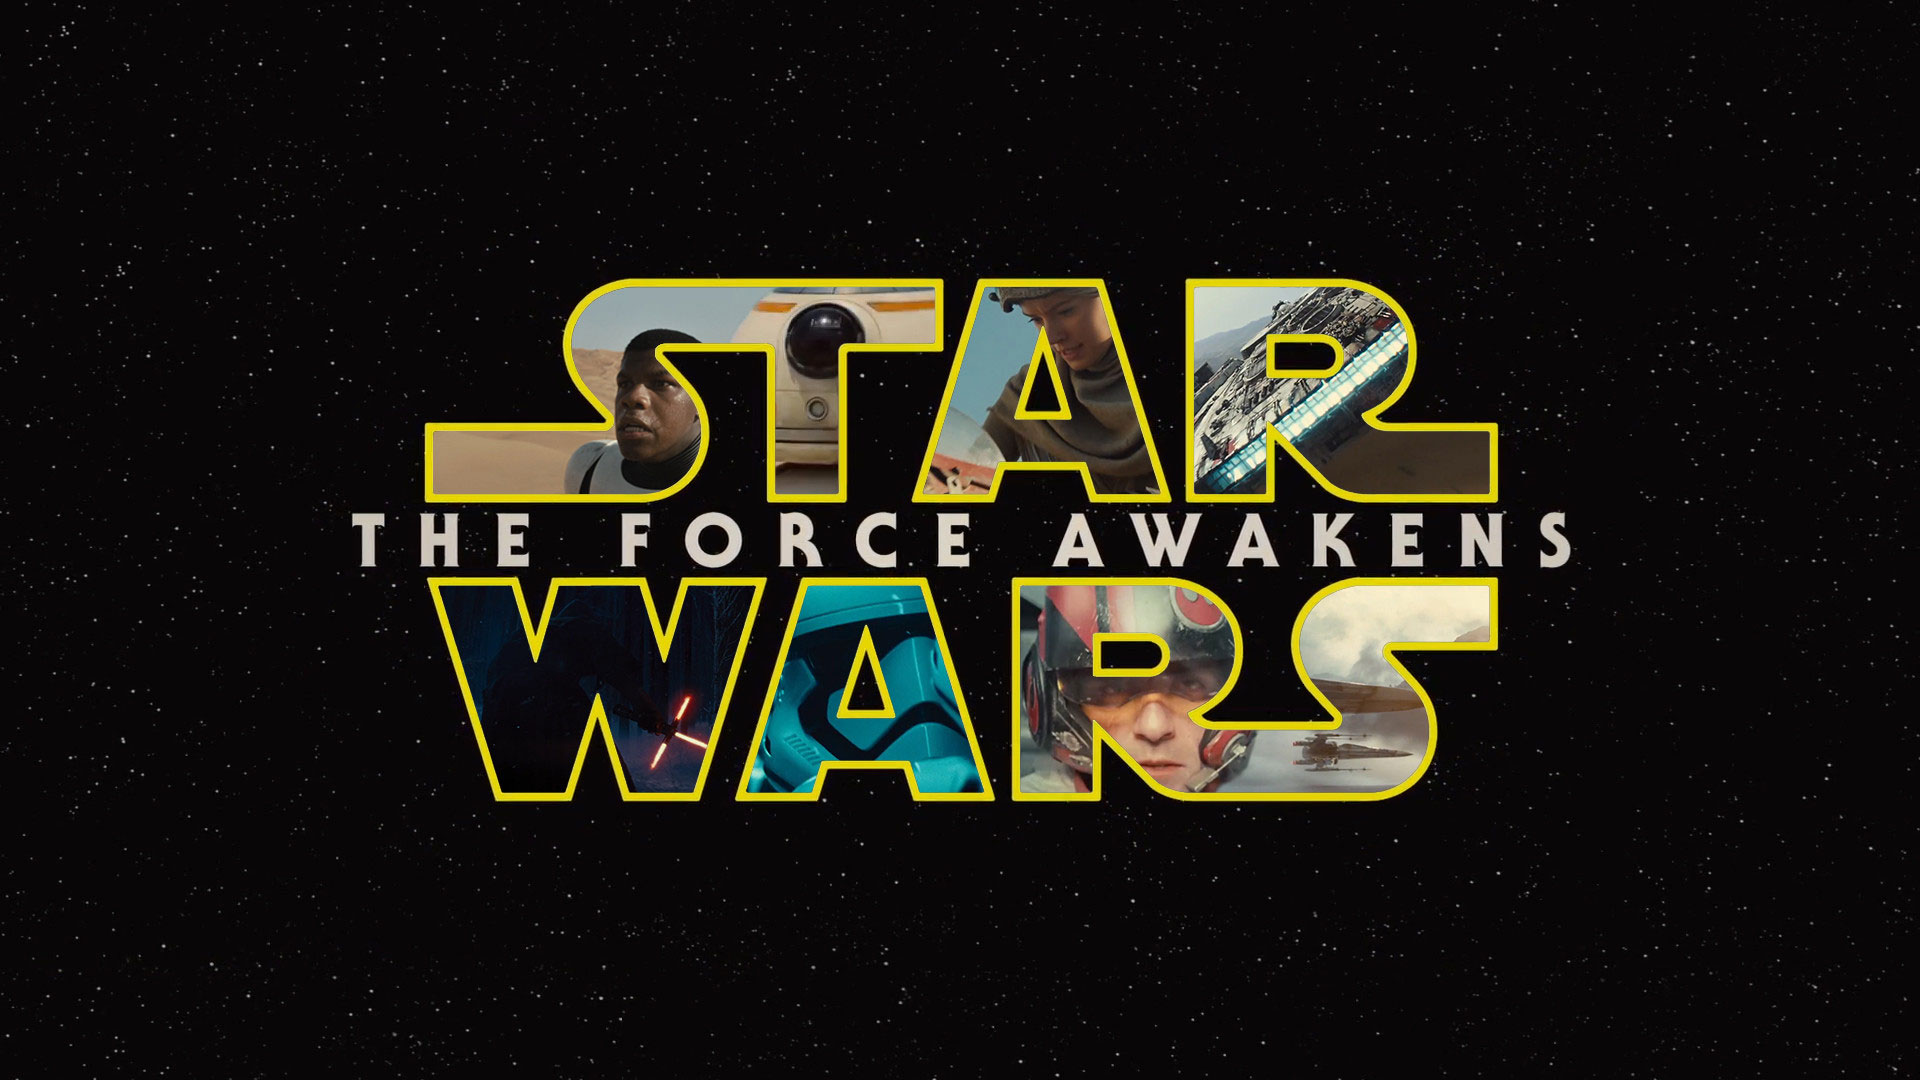 Star Wars The Force Awakens Wallpaper And Lego Trailer Collider